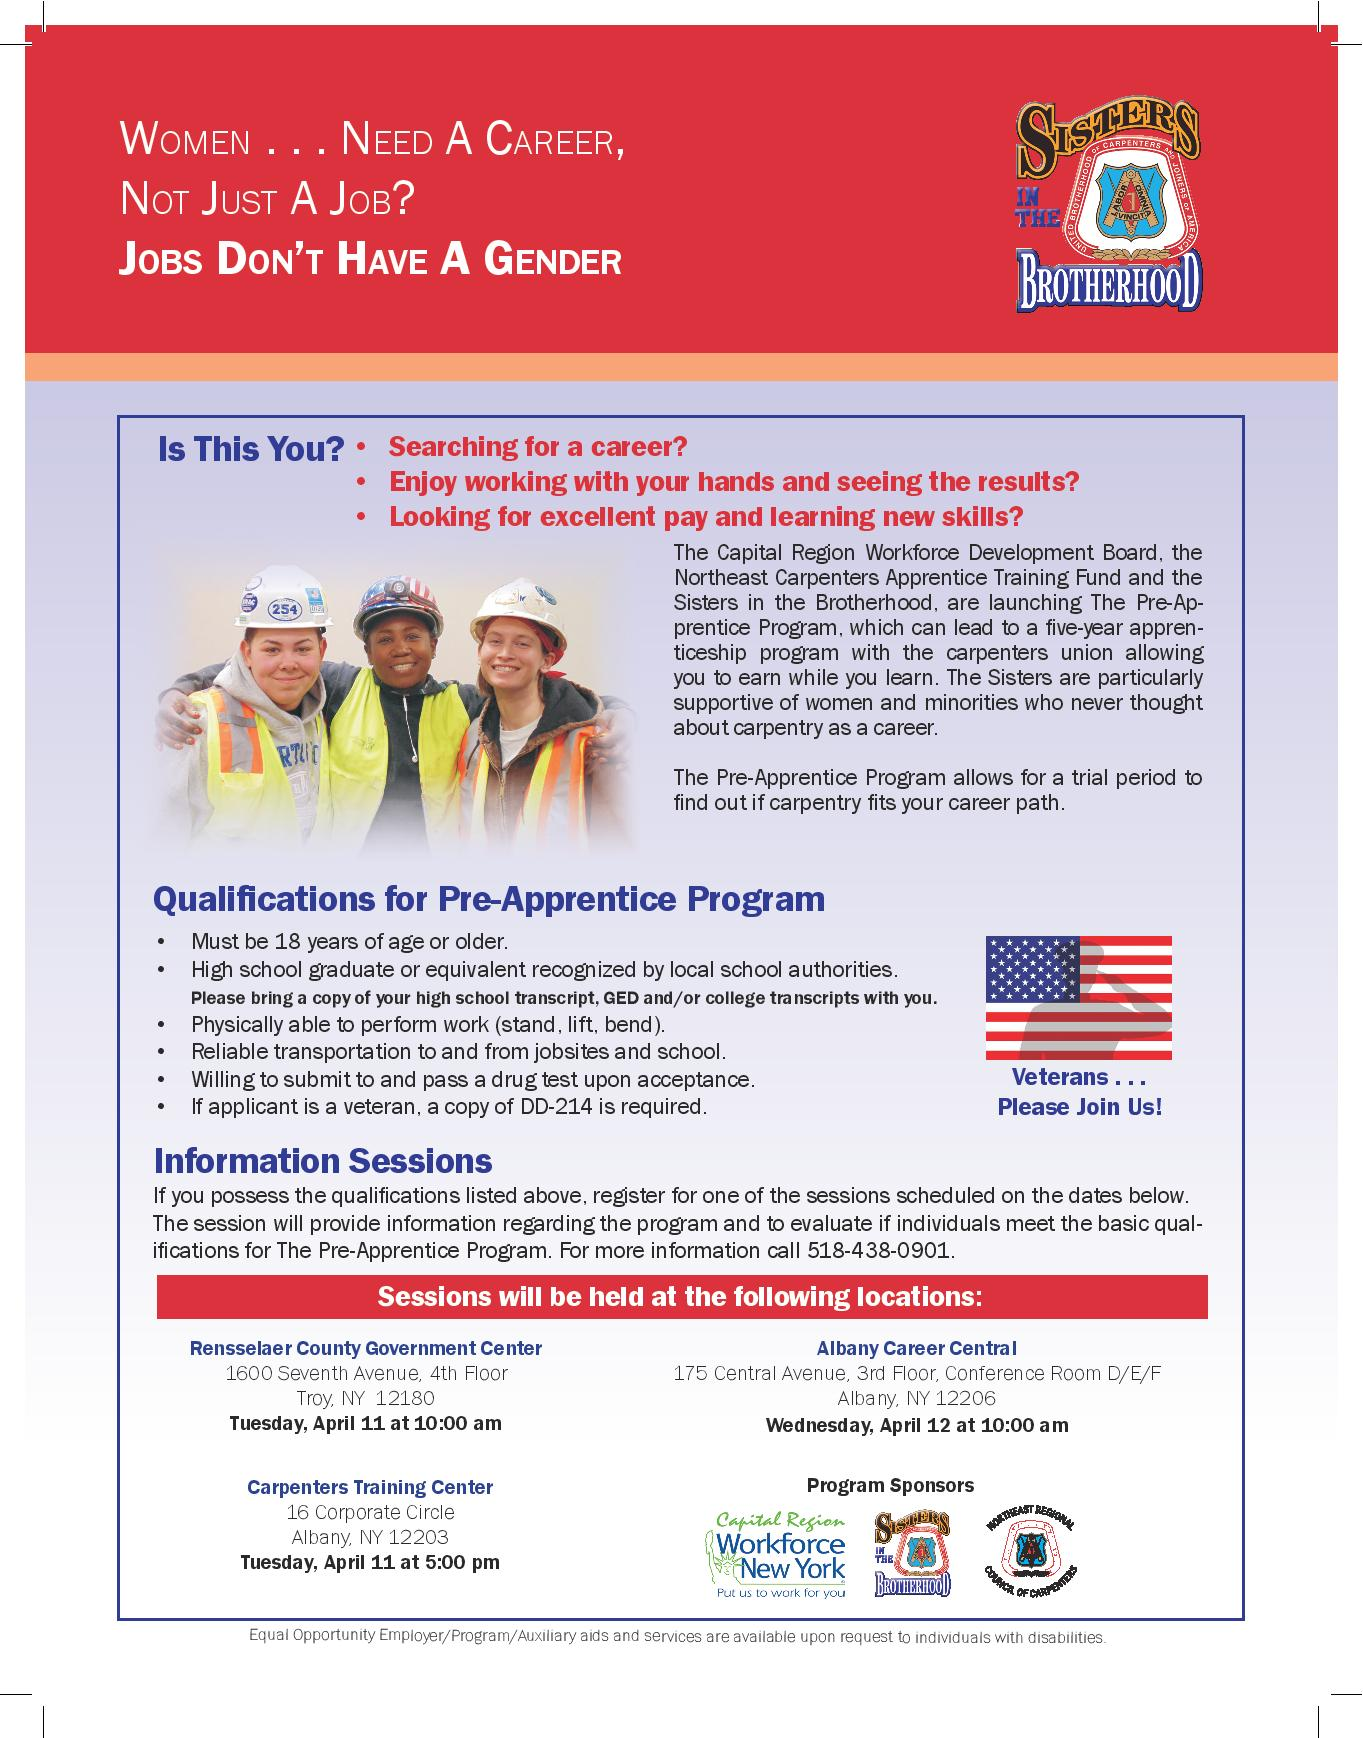 United Services Military Apprenticeship Program USMAP Usmap Usn - Us map apprenticeship program